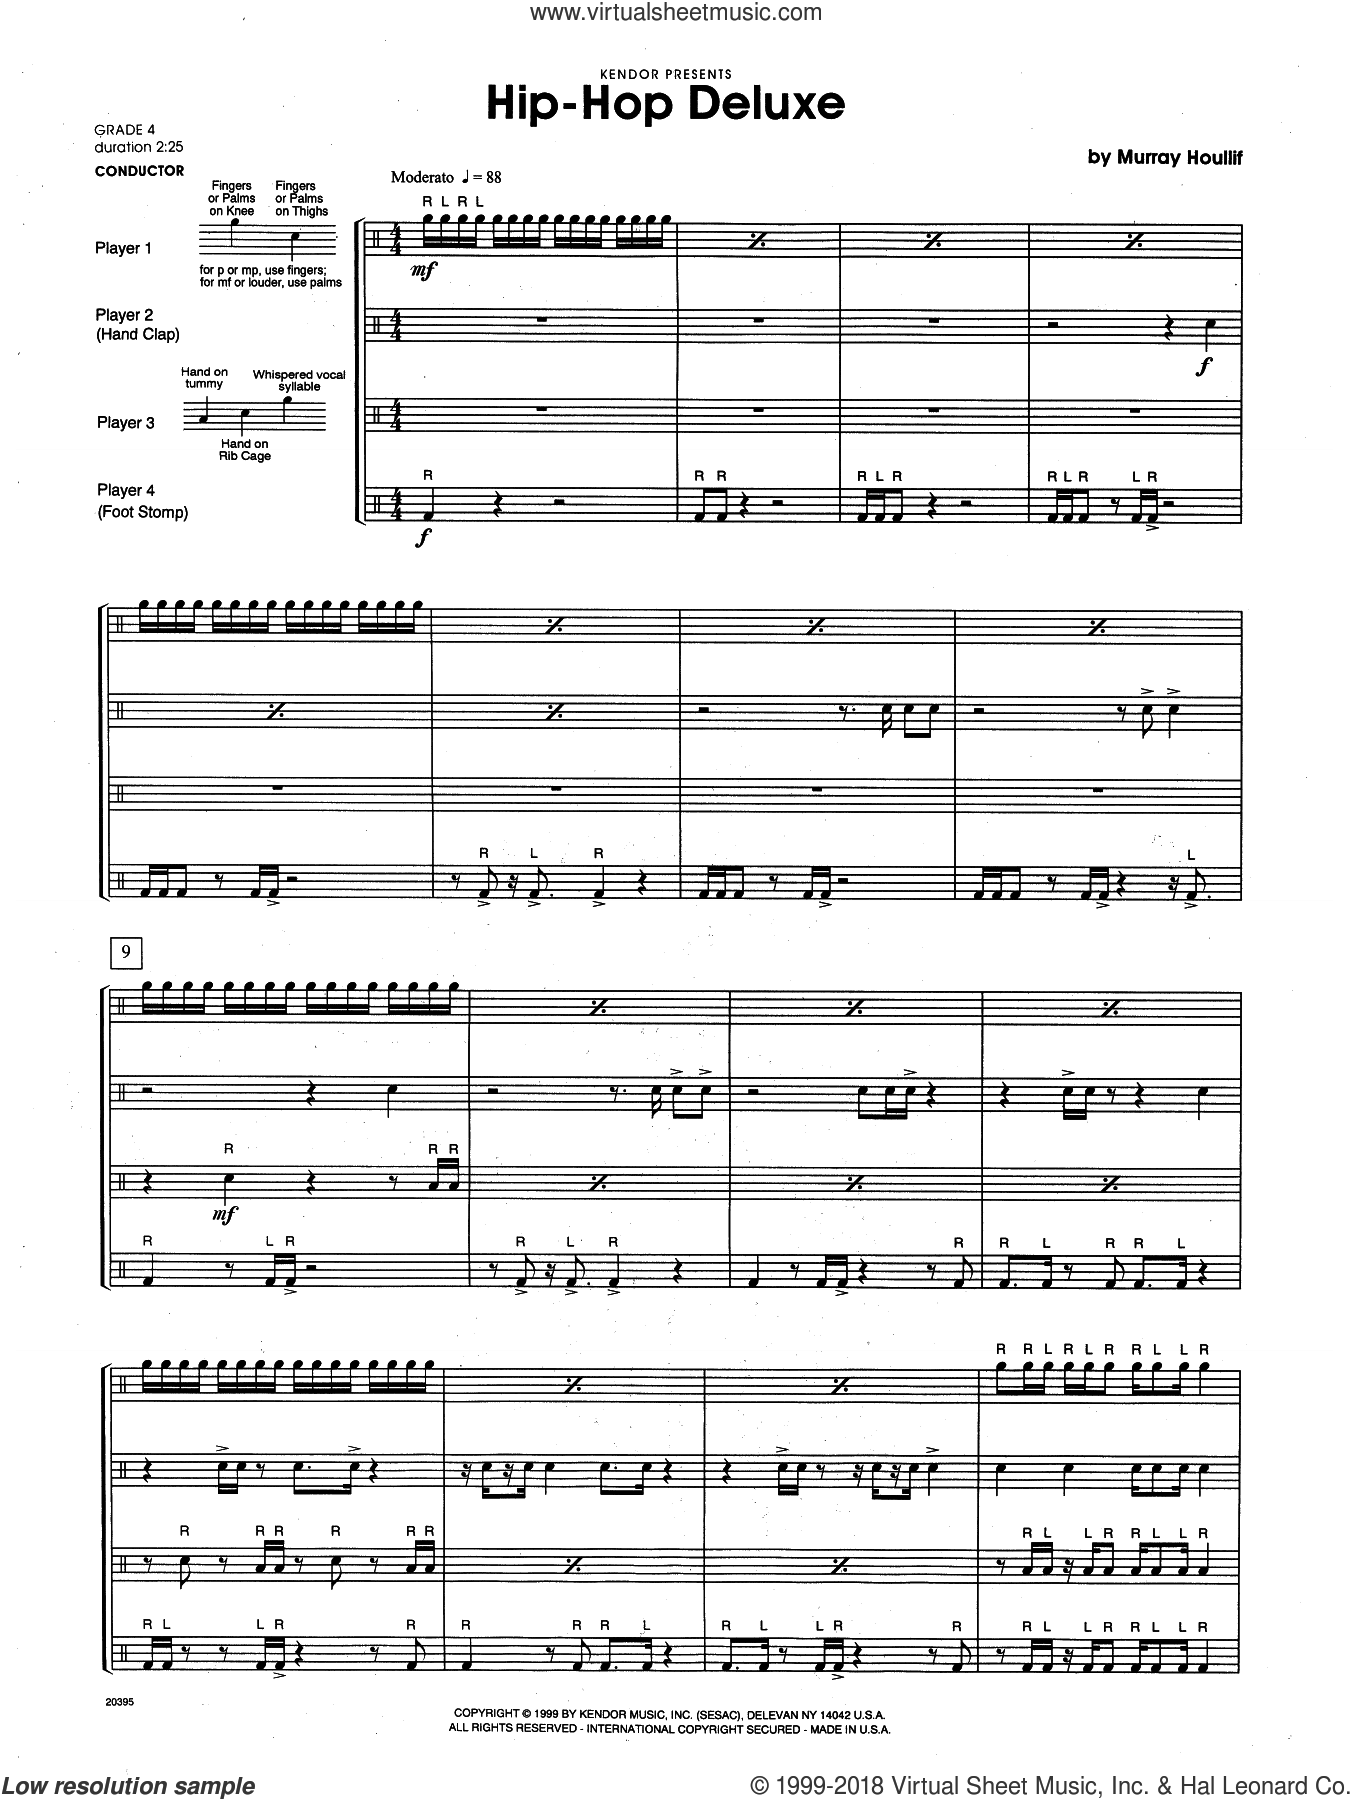 Hip-Hop Deluxe (COMPLETE) sheet music for percussions by Houllif, intermediate. Score Image Preview.